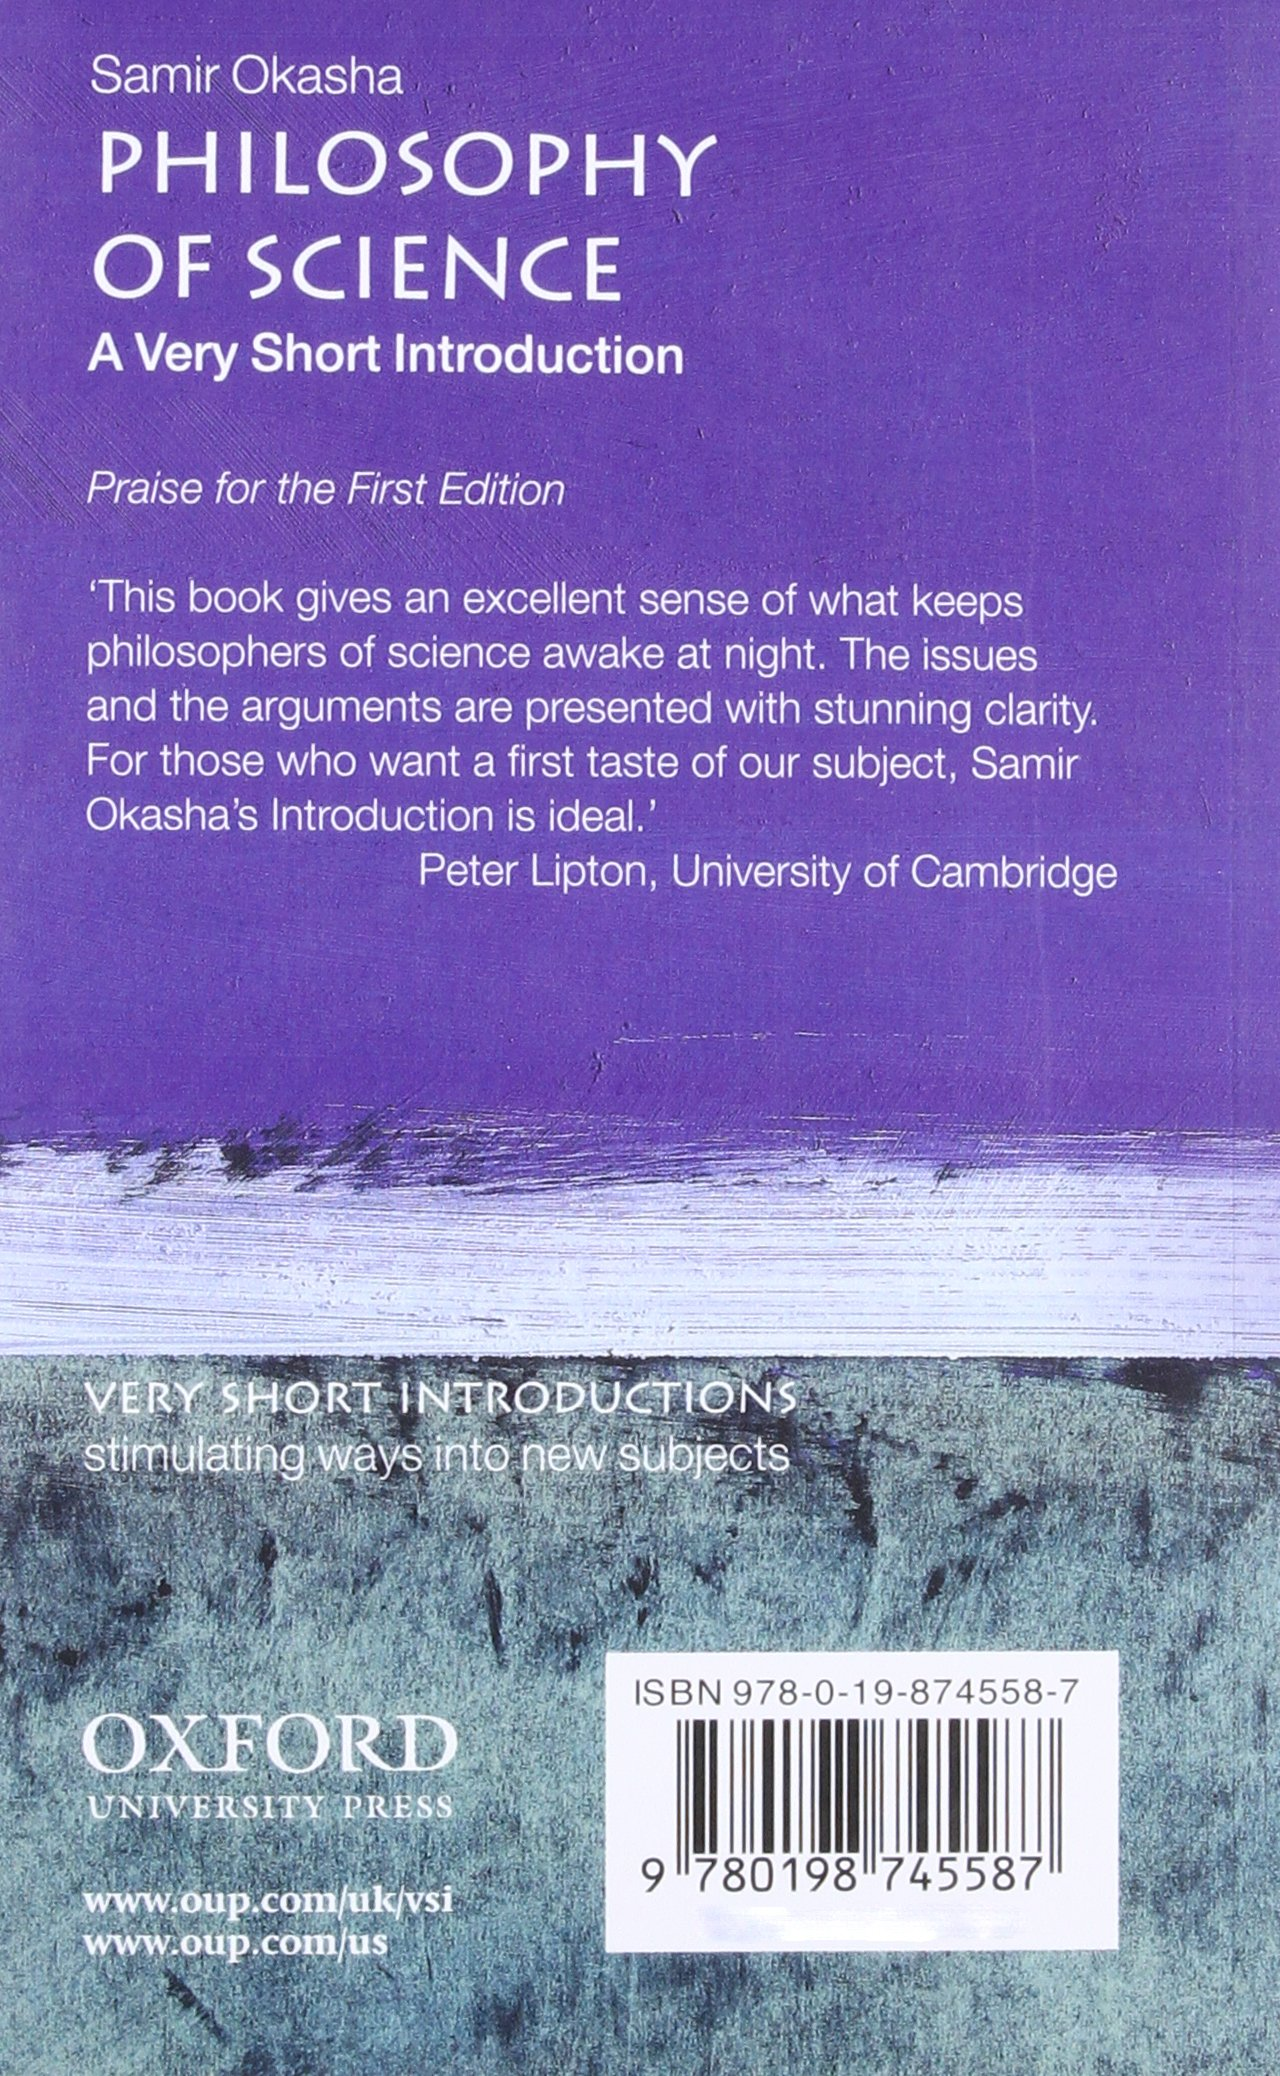 Philosophy of Science: Very Short Introduction Very Short Introductions:  Amazon.de: Samir Okasha: Fremdsprachige Bücher